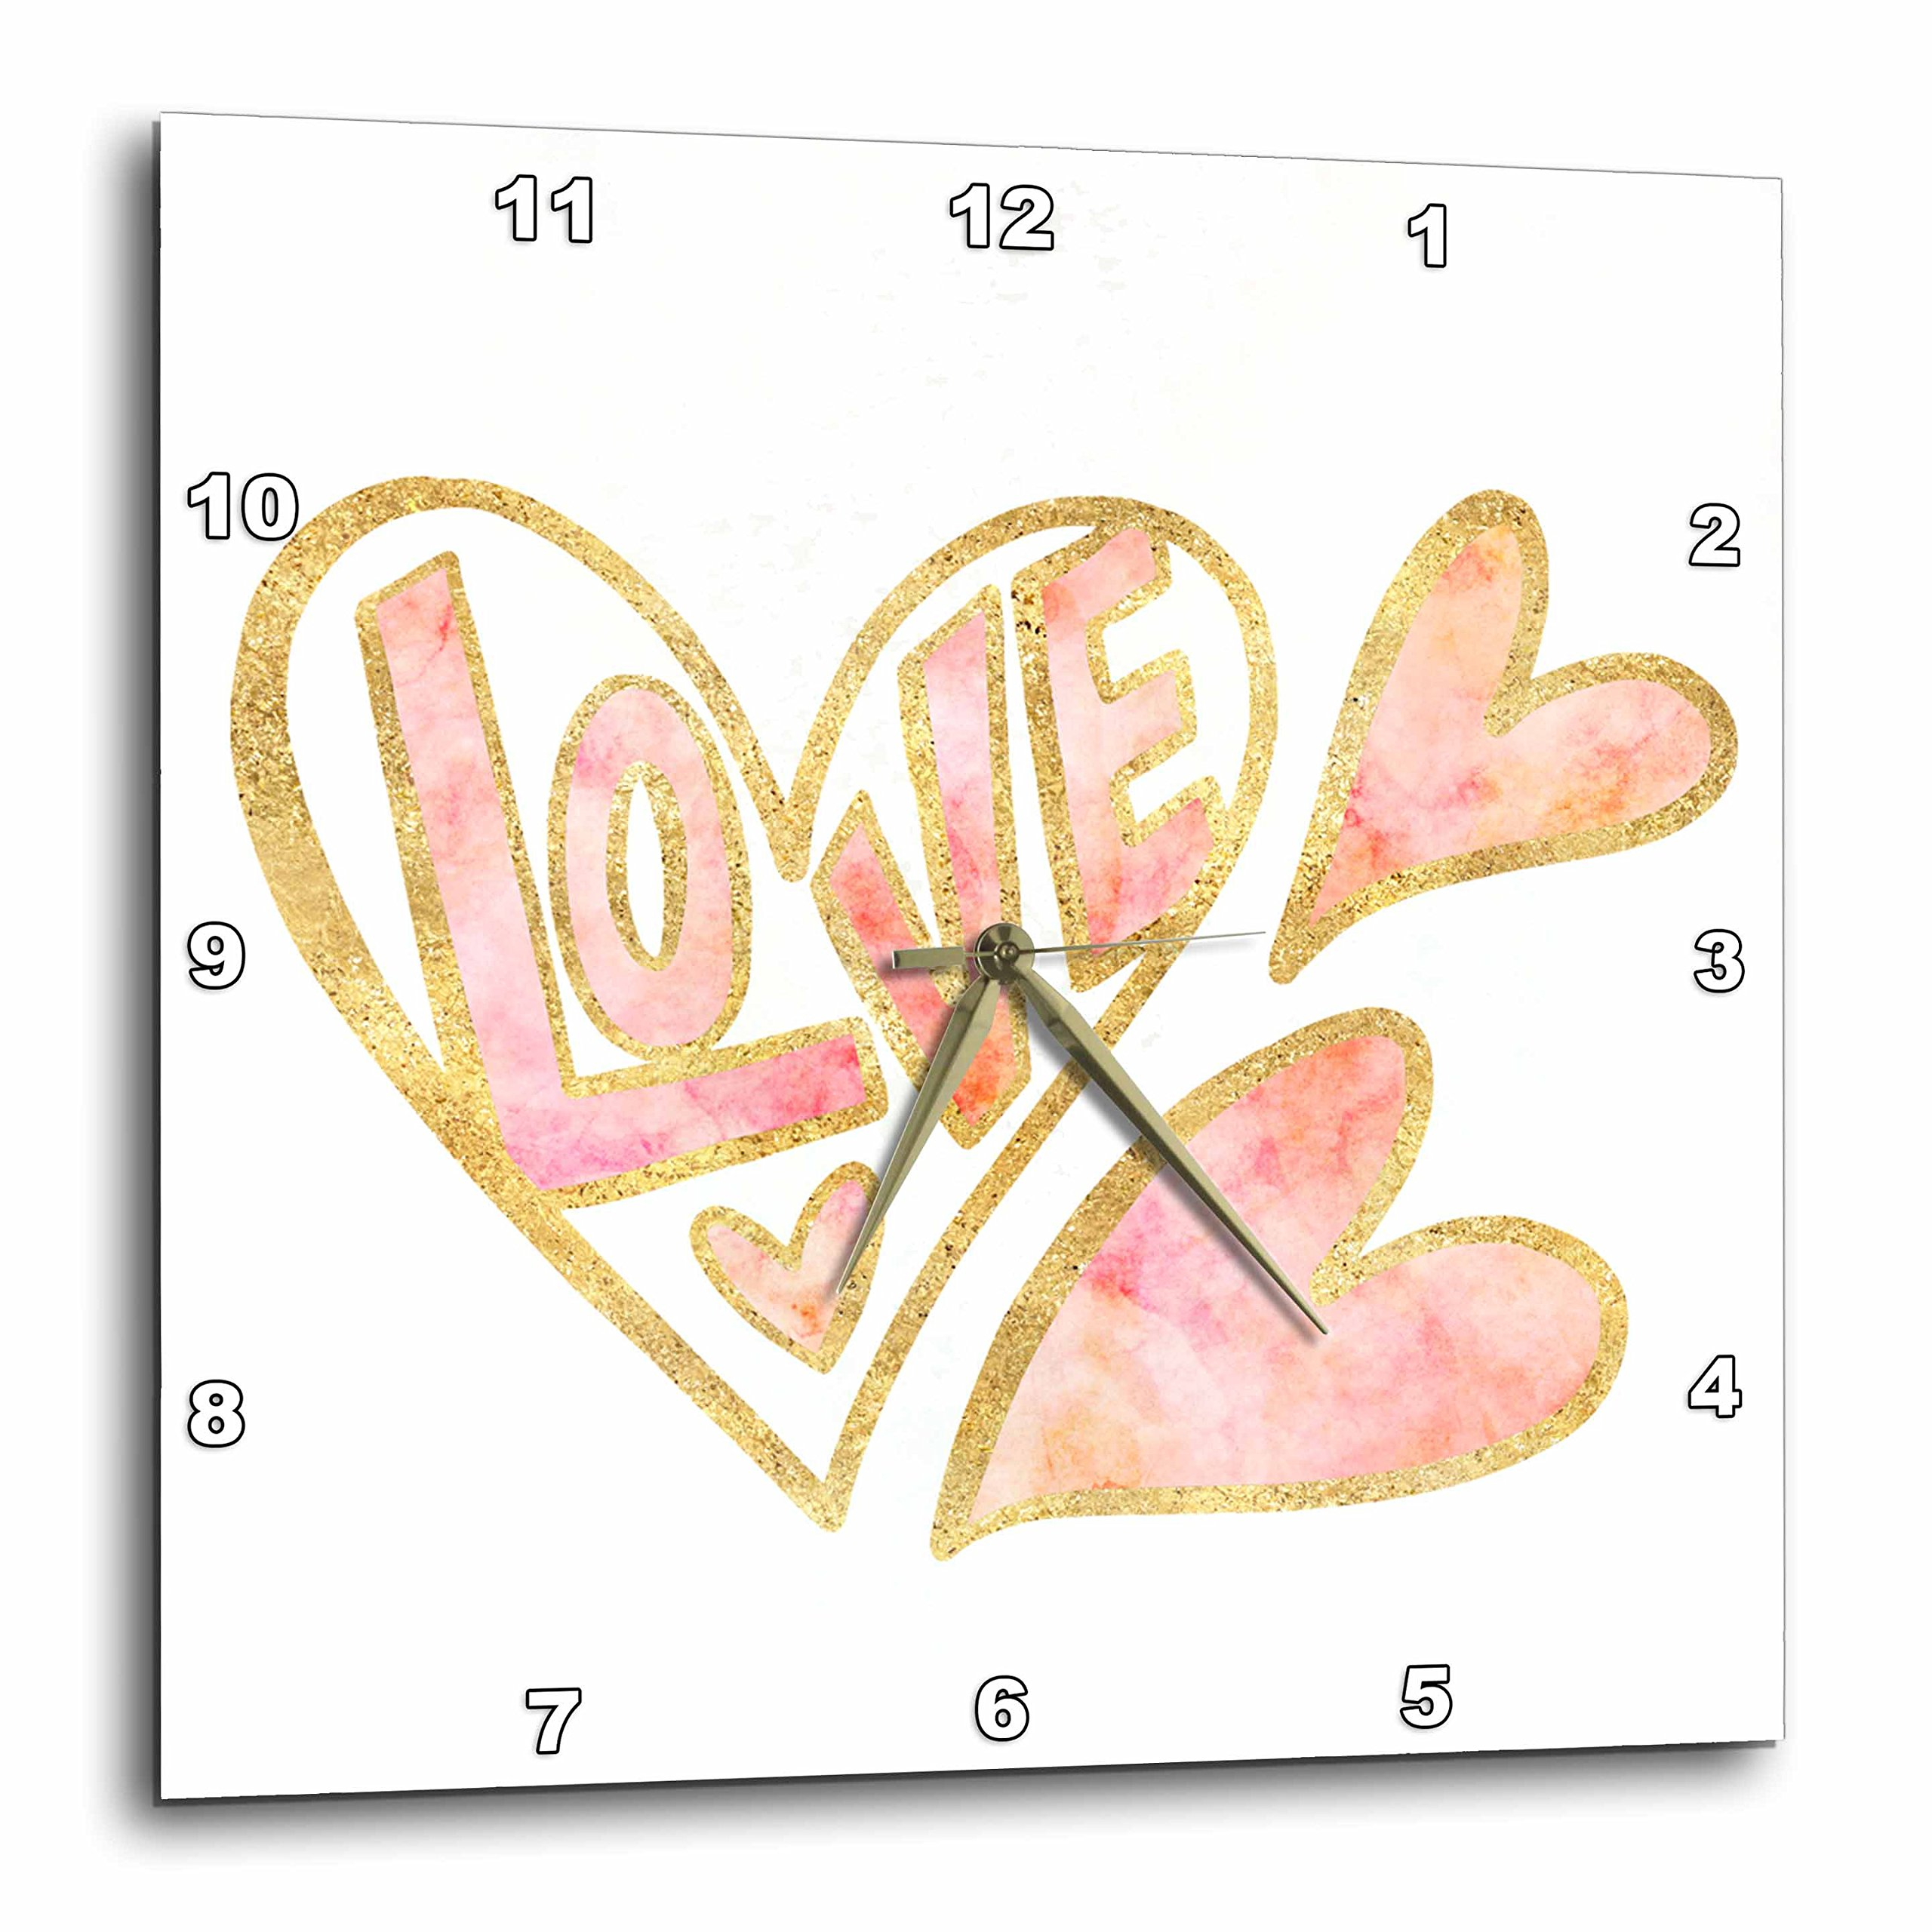 3dRose PS Inspiration - Gold Pink Love Watercolor Hearts - 10x10 Wall Clock (dpp_280754_1) by 3dRose (Image #1)